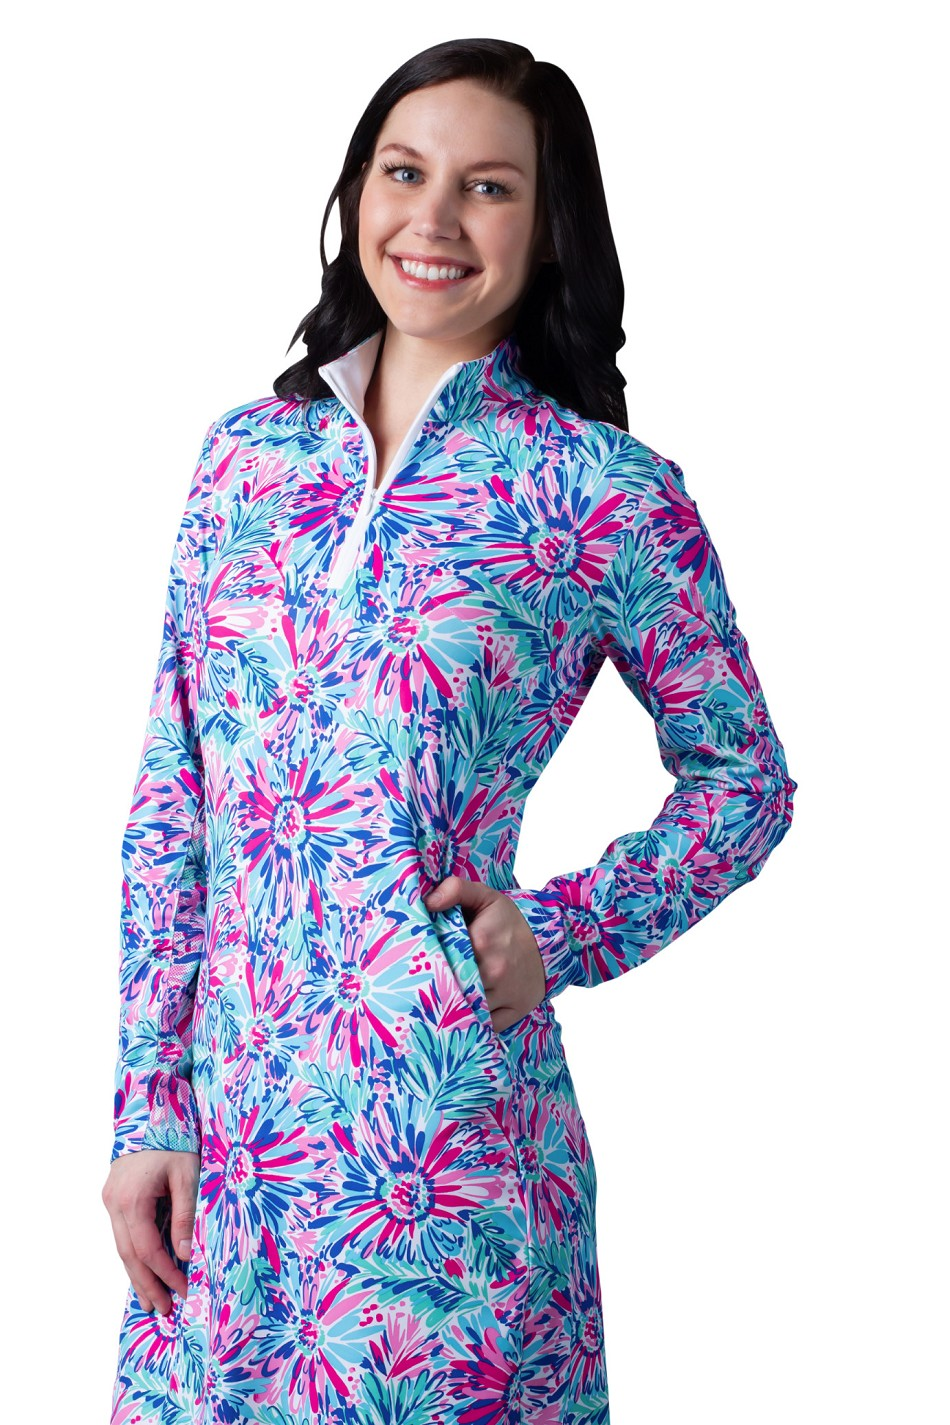 900720-C. SanSoleil SolStyle ICE. Long Sleeve Zip Mock Dress with attached athletic short.  Lola Floral